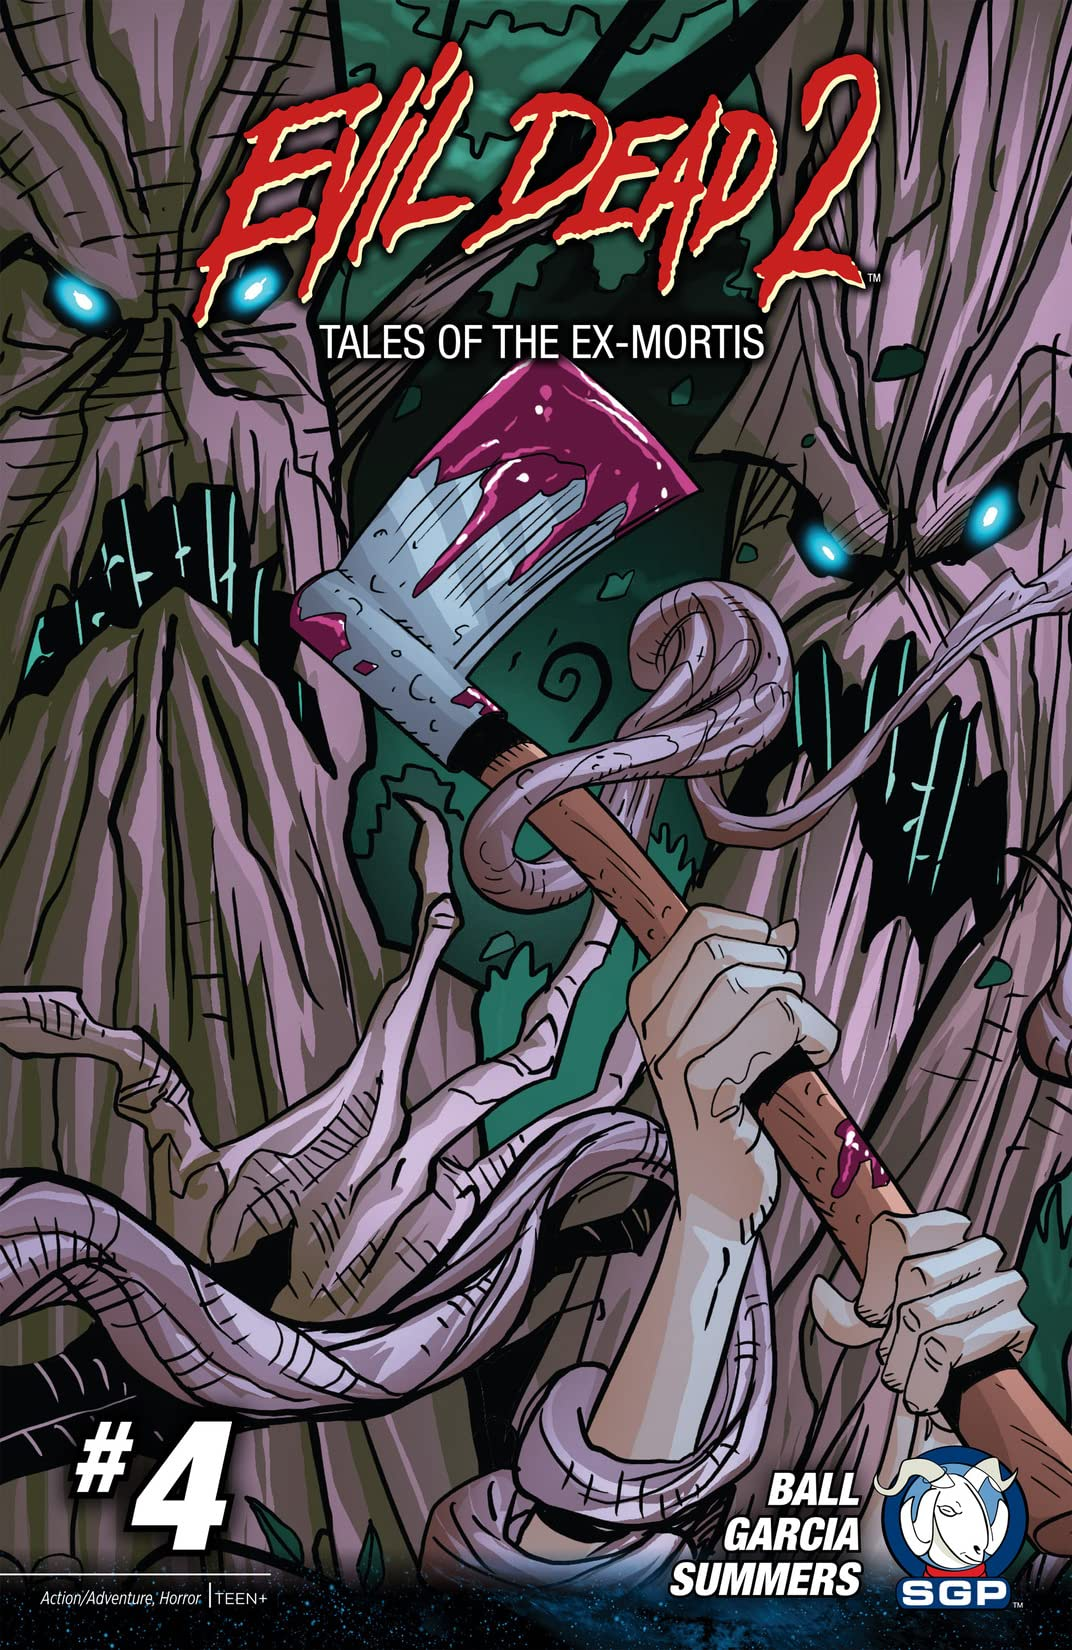 Evil Dead 2: Tales of the Ex-Mortis #4